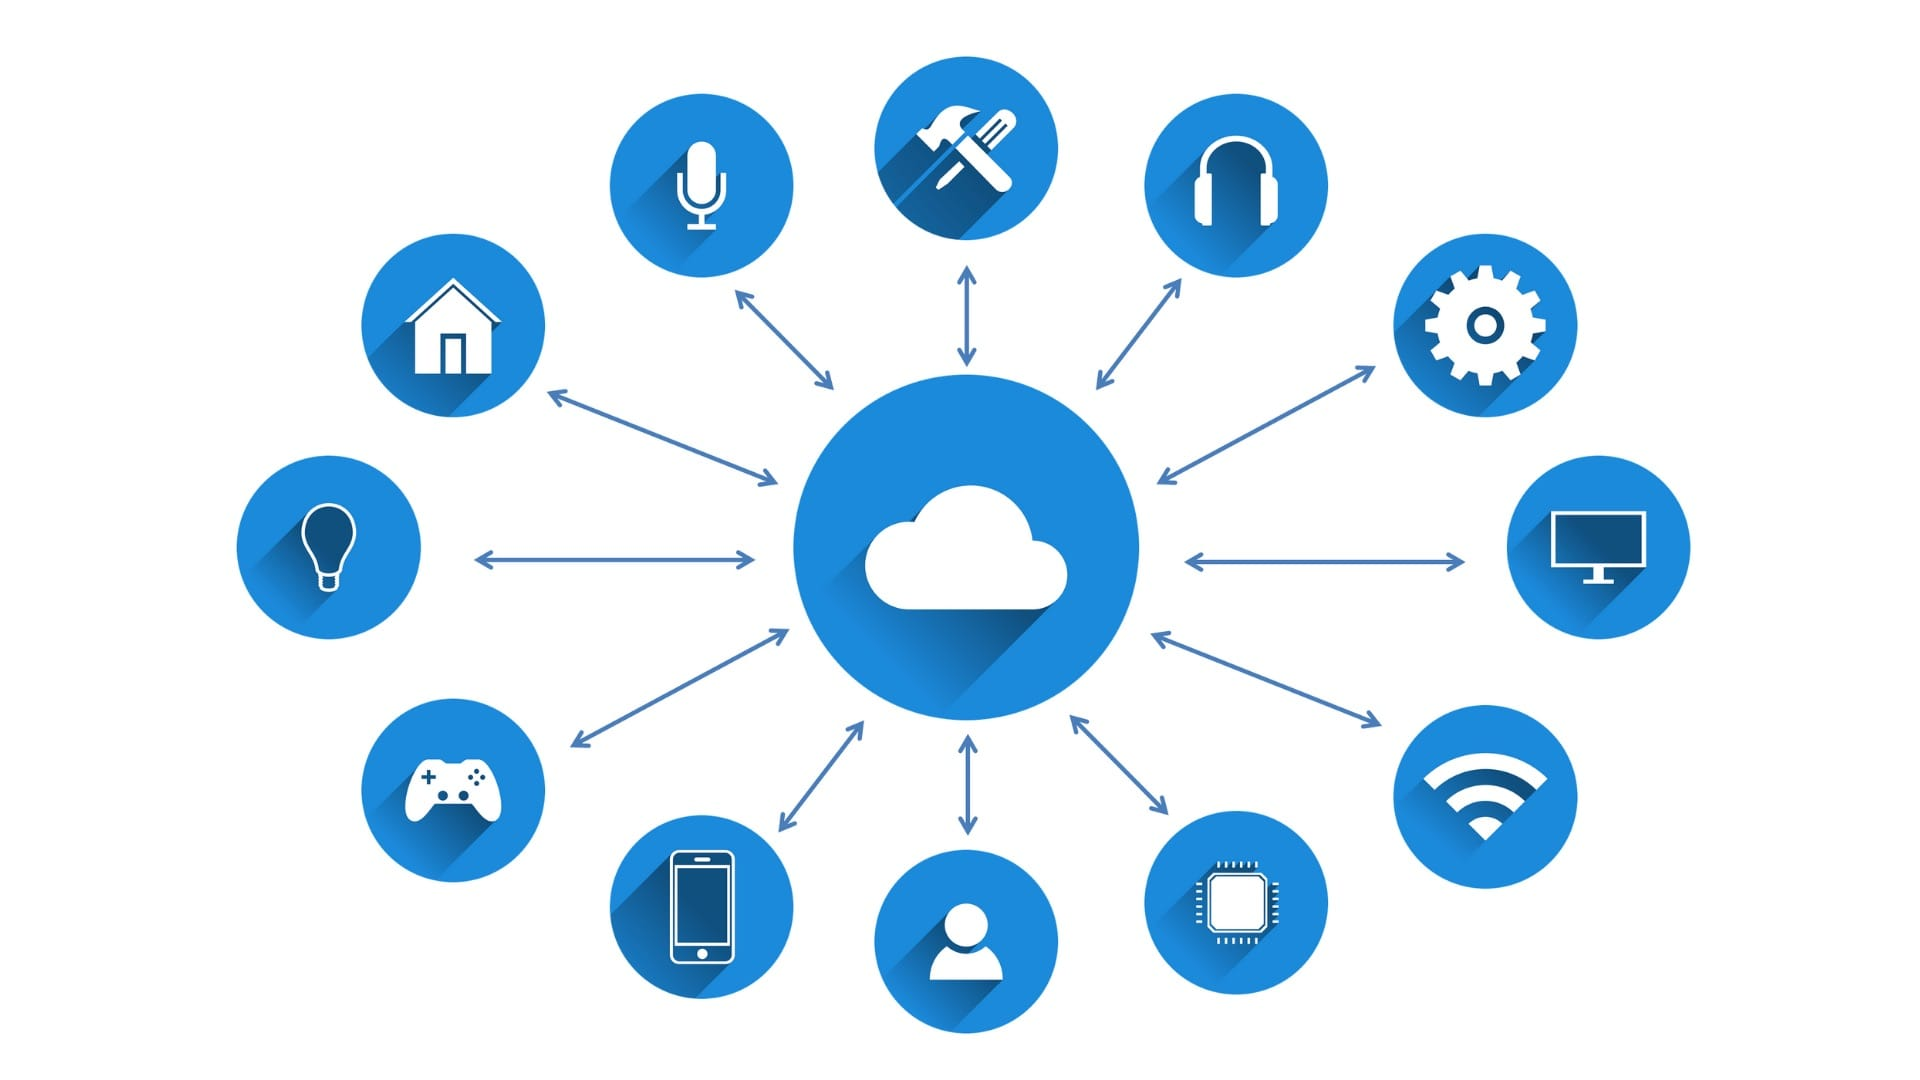 What is IoT, and how is it used?